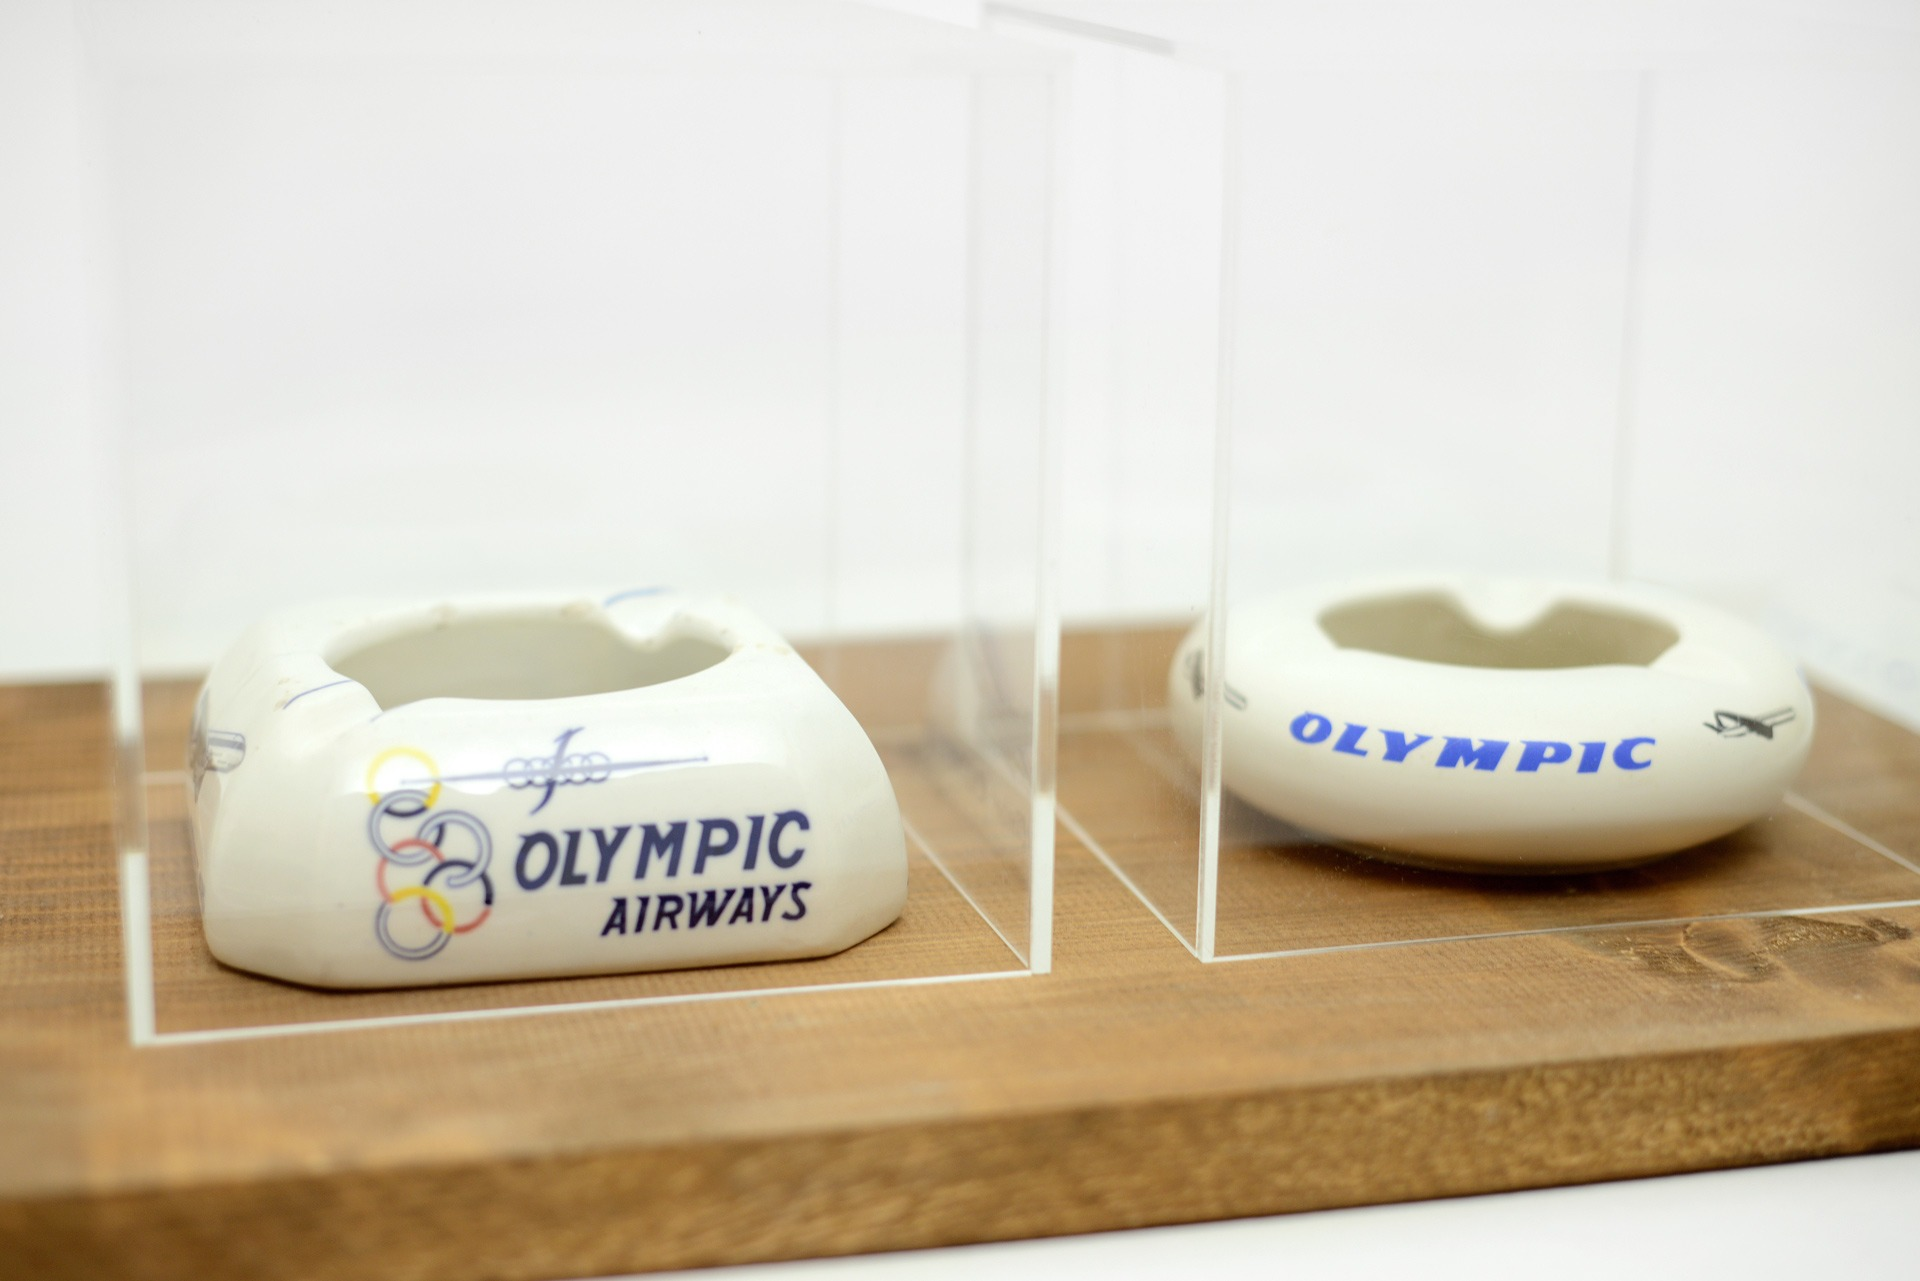 "1960s Olympic Airways ""Jetliner Comet 4B""ceramic ashtray made in Italy by Ceramiche Titano & 1960s Olympic Airways ceramic ashtray made in Greece by Keramikos"